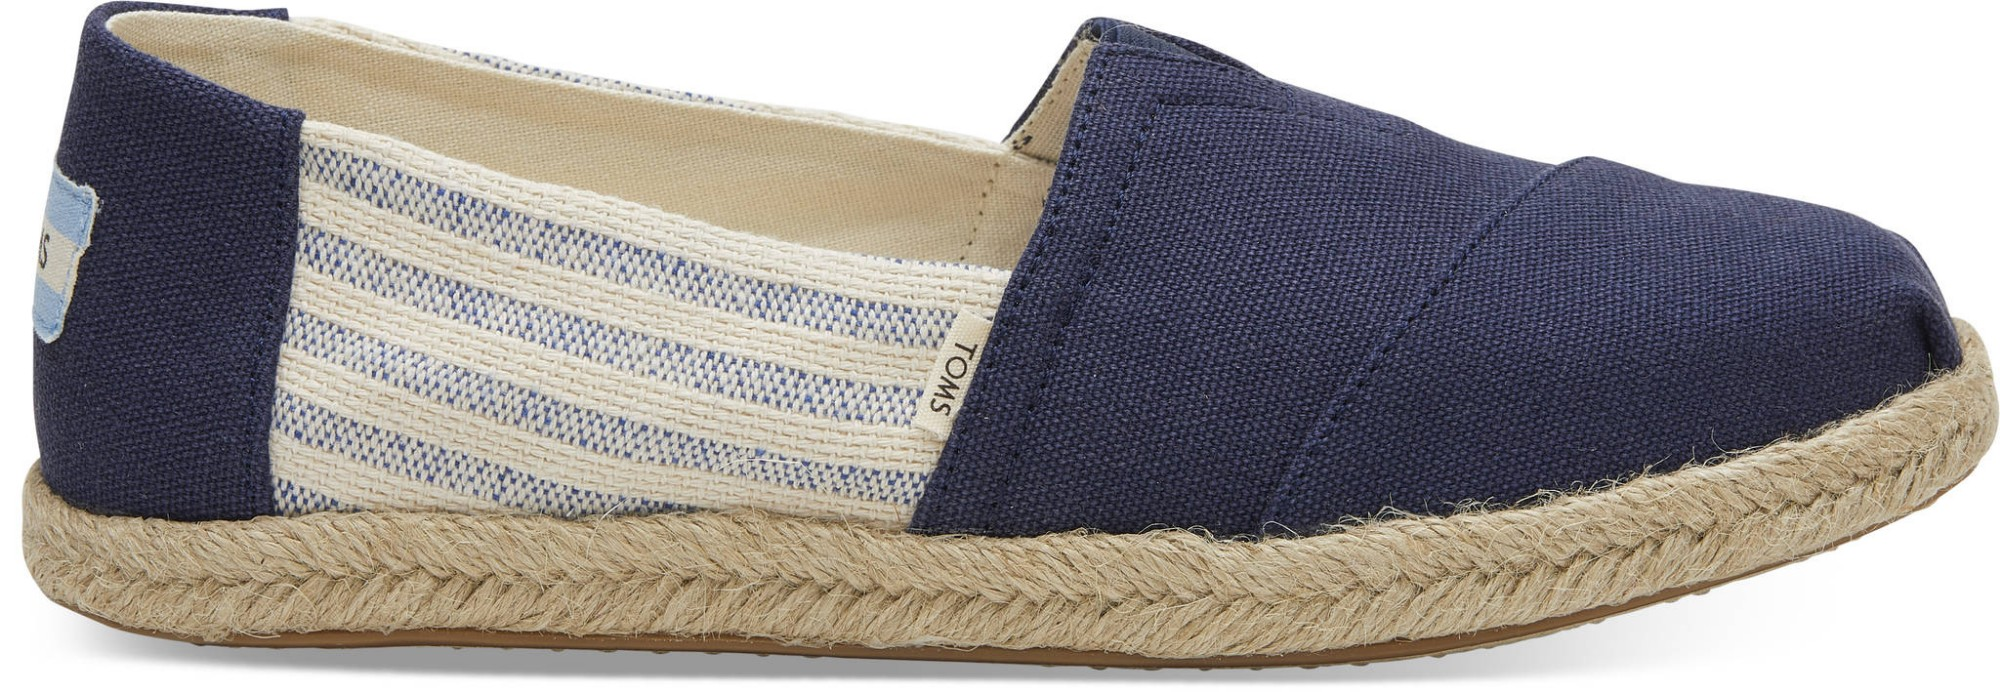 TOMS Canvas Ivy League on Rope Women's Alpargata Navy 38,5